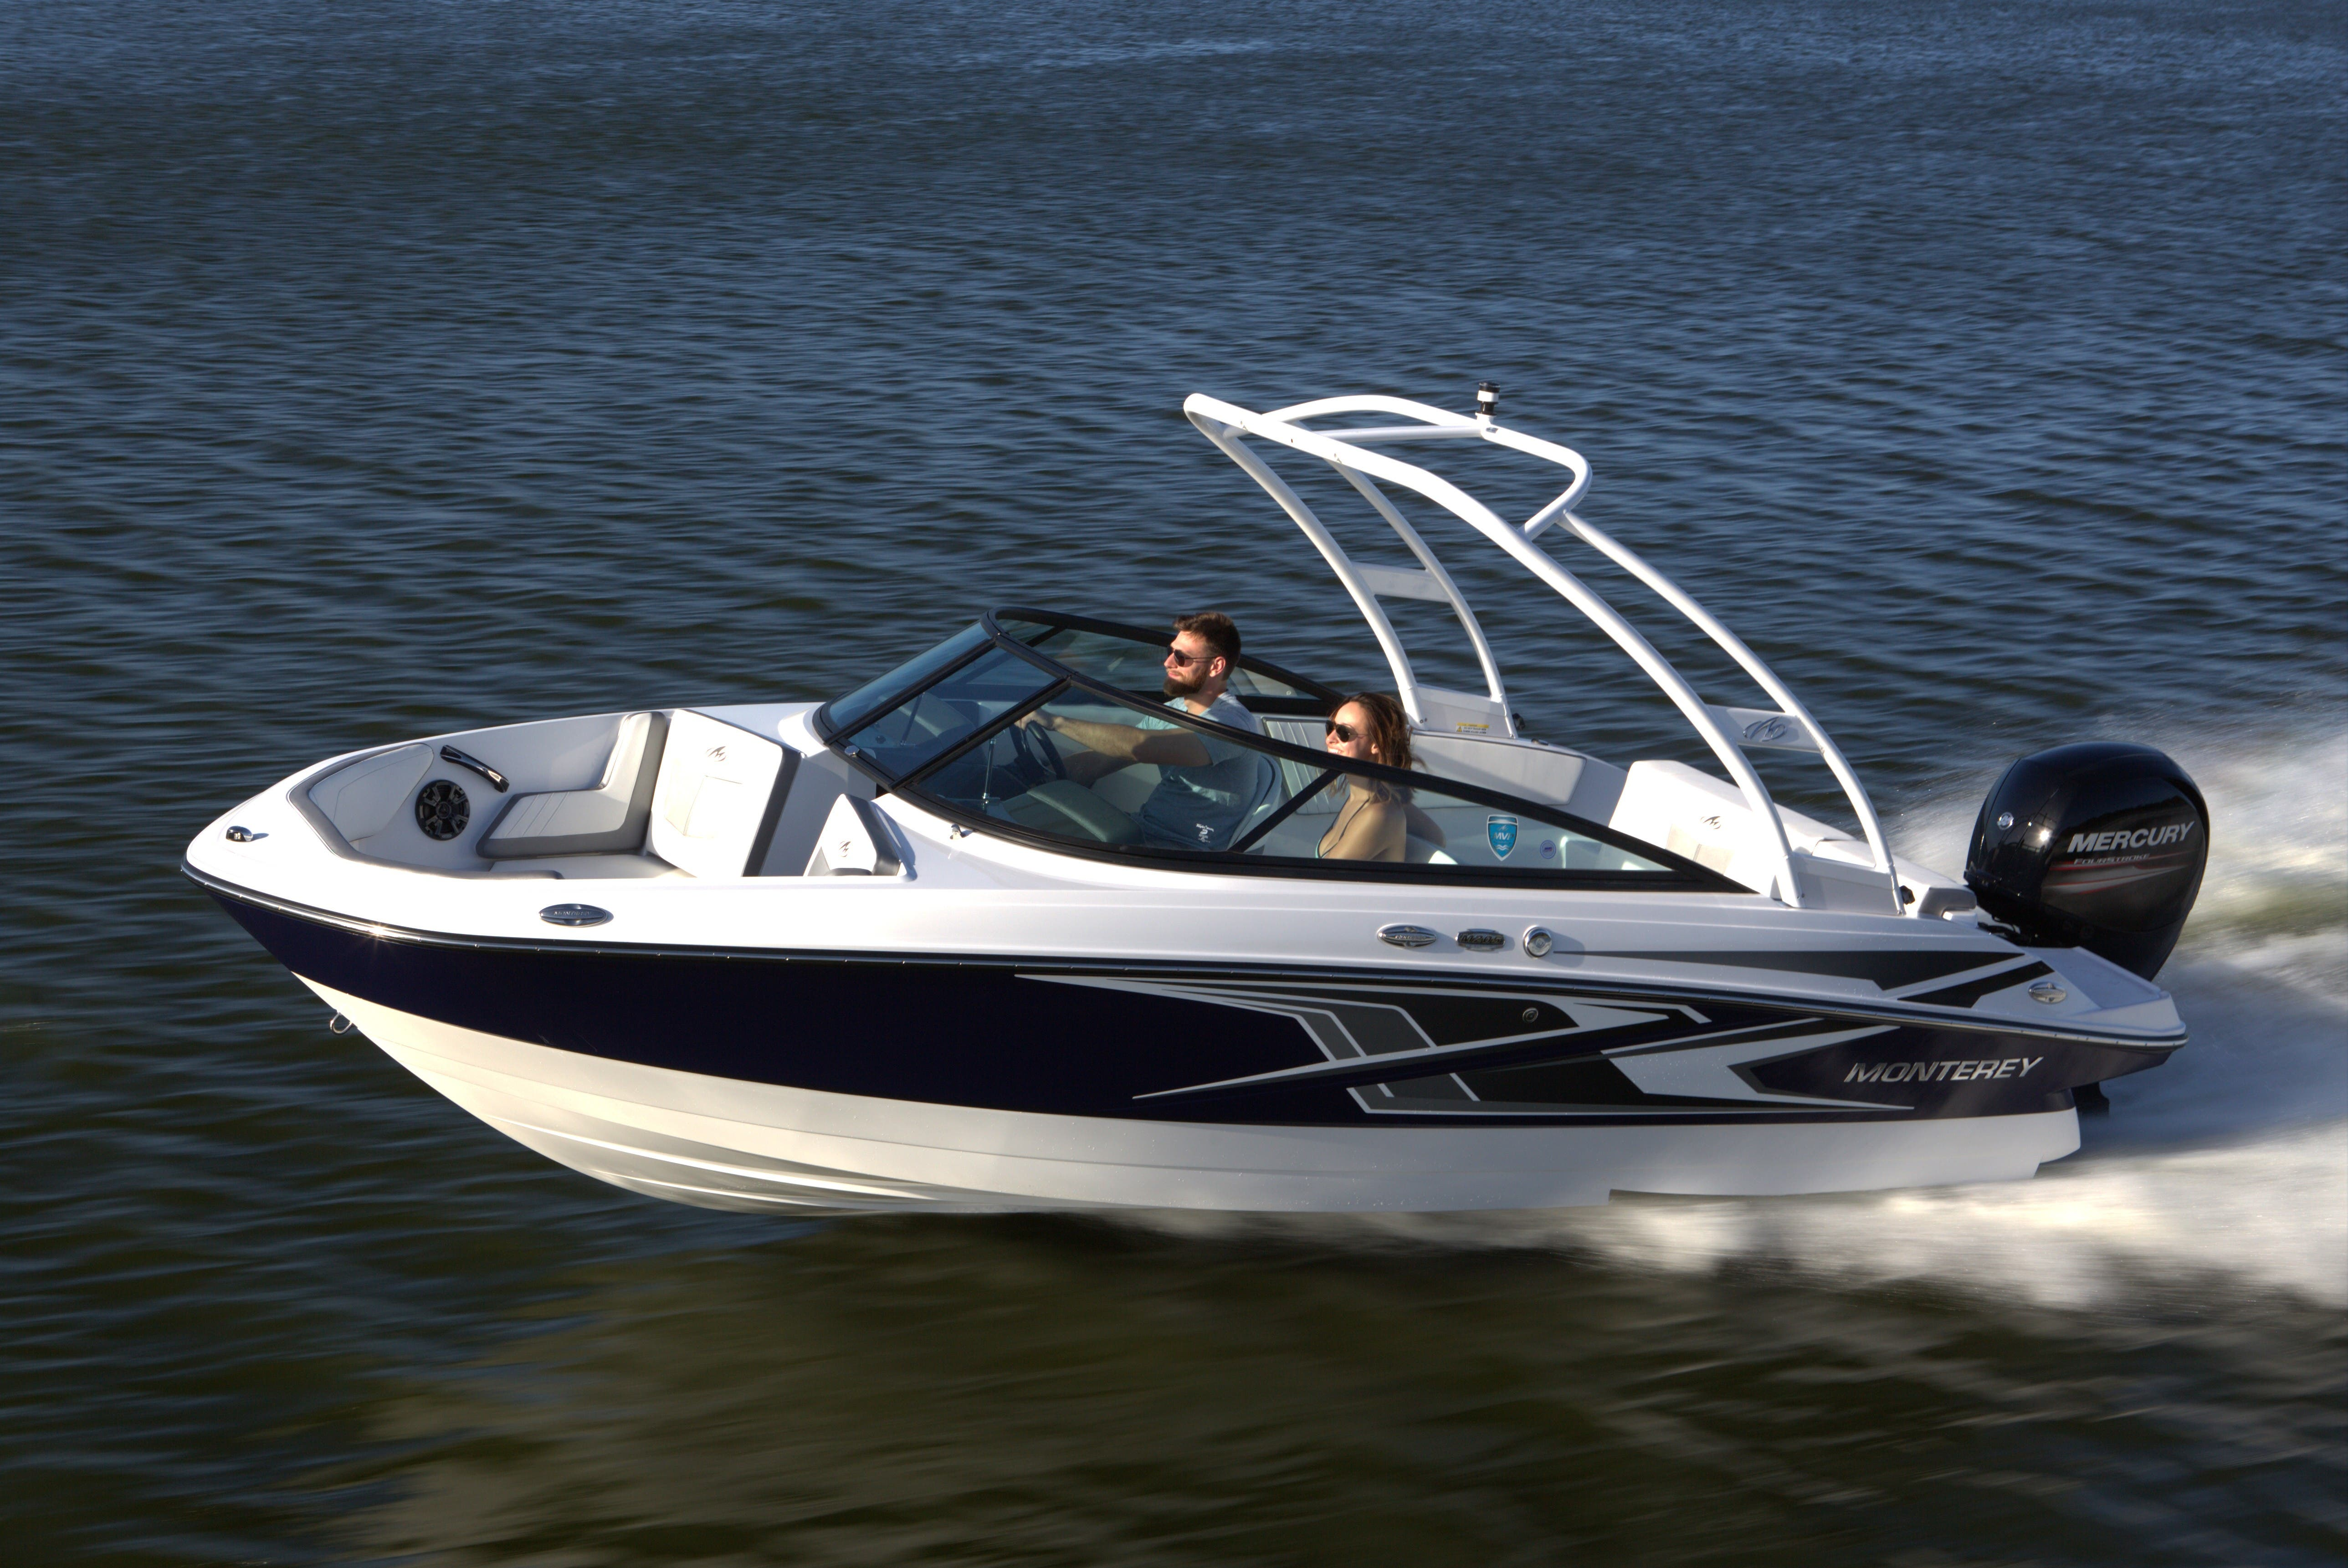 2022 Monterey boat for sale, model of the boat is M-205 & Image # 4 of 4